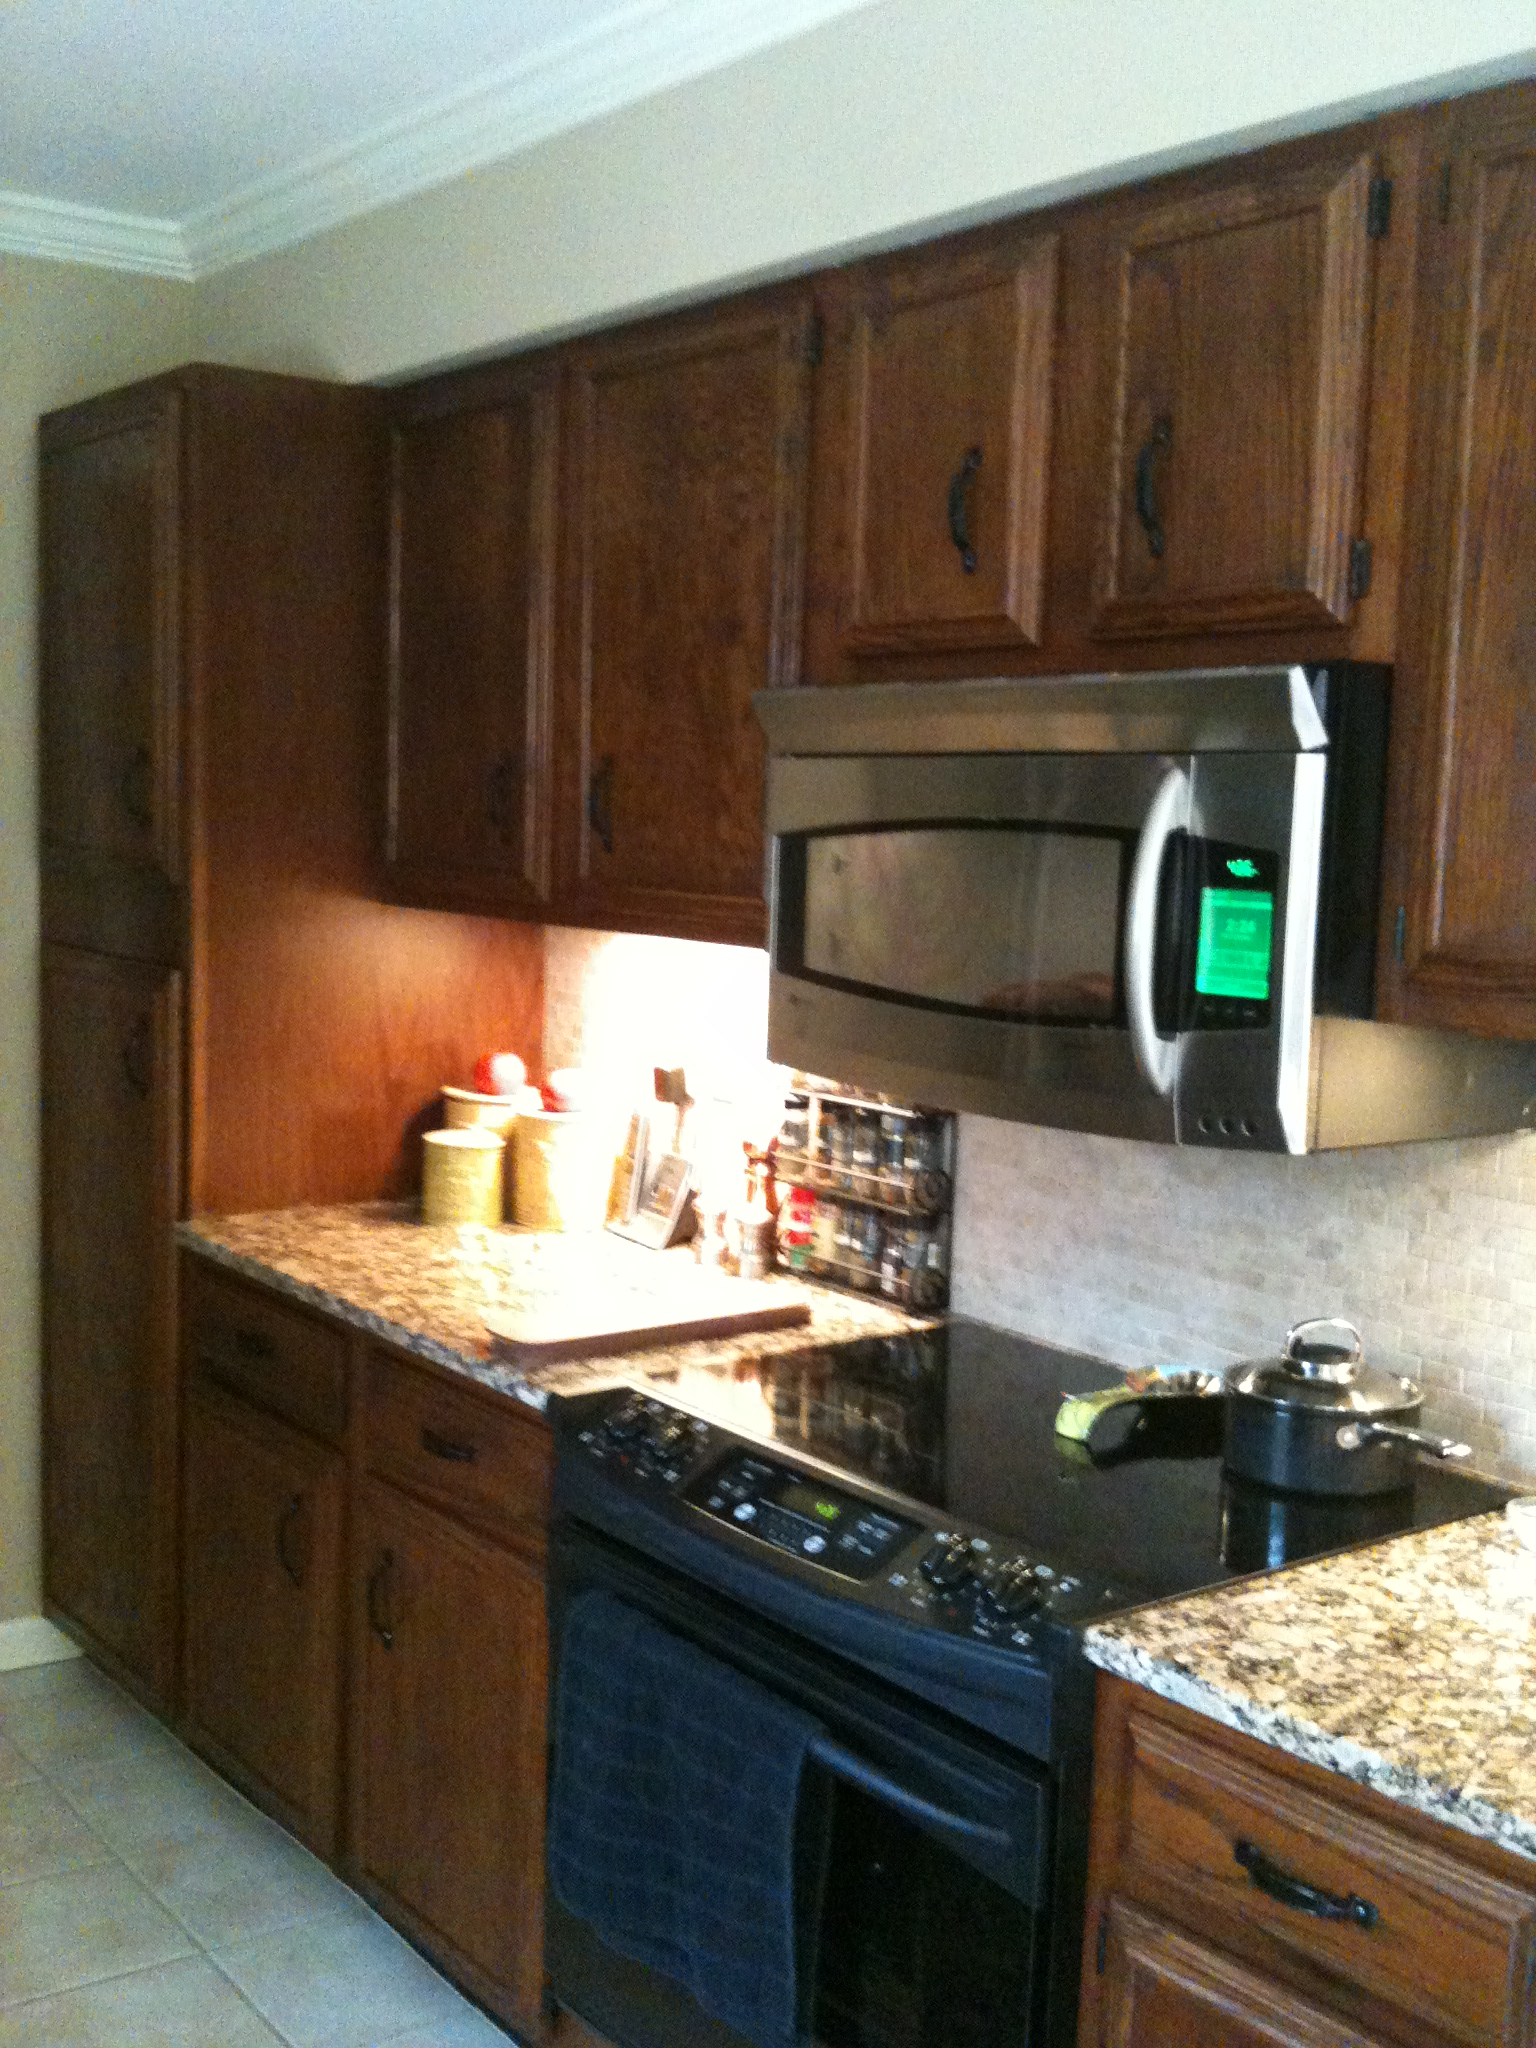 Cabinet painting painting contractors charlotte - Interior house painting charlotte nc ...